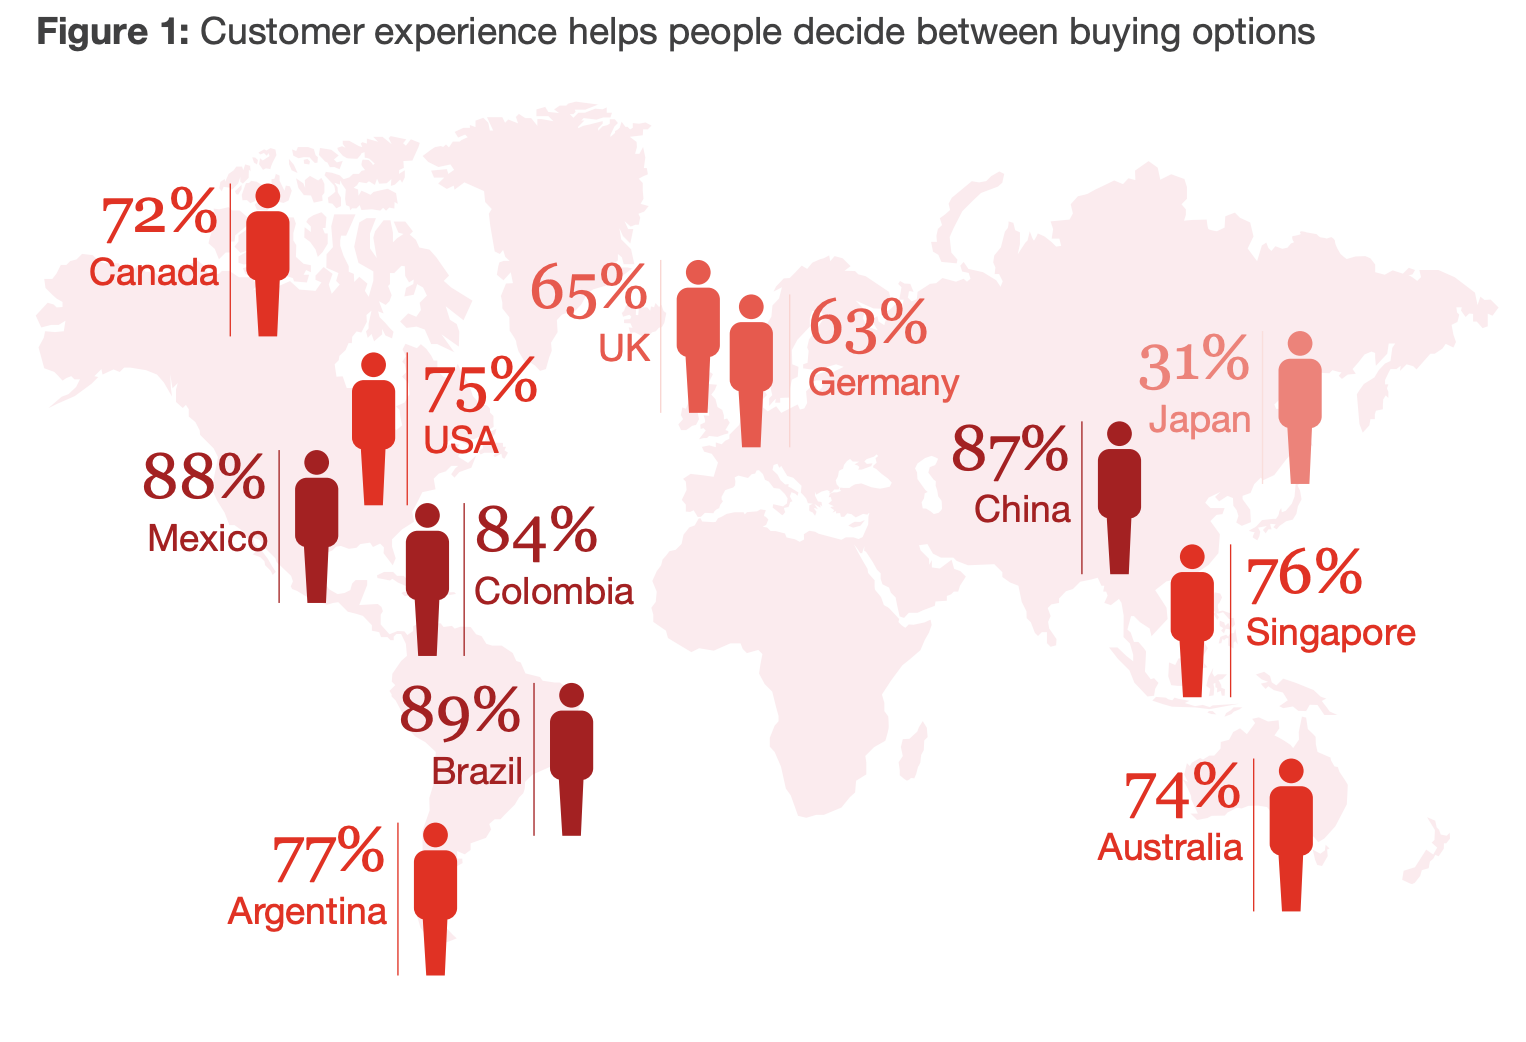 PwC Future of Customer Experience Survey 2017/18